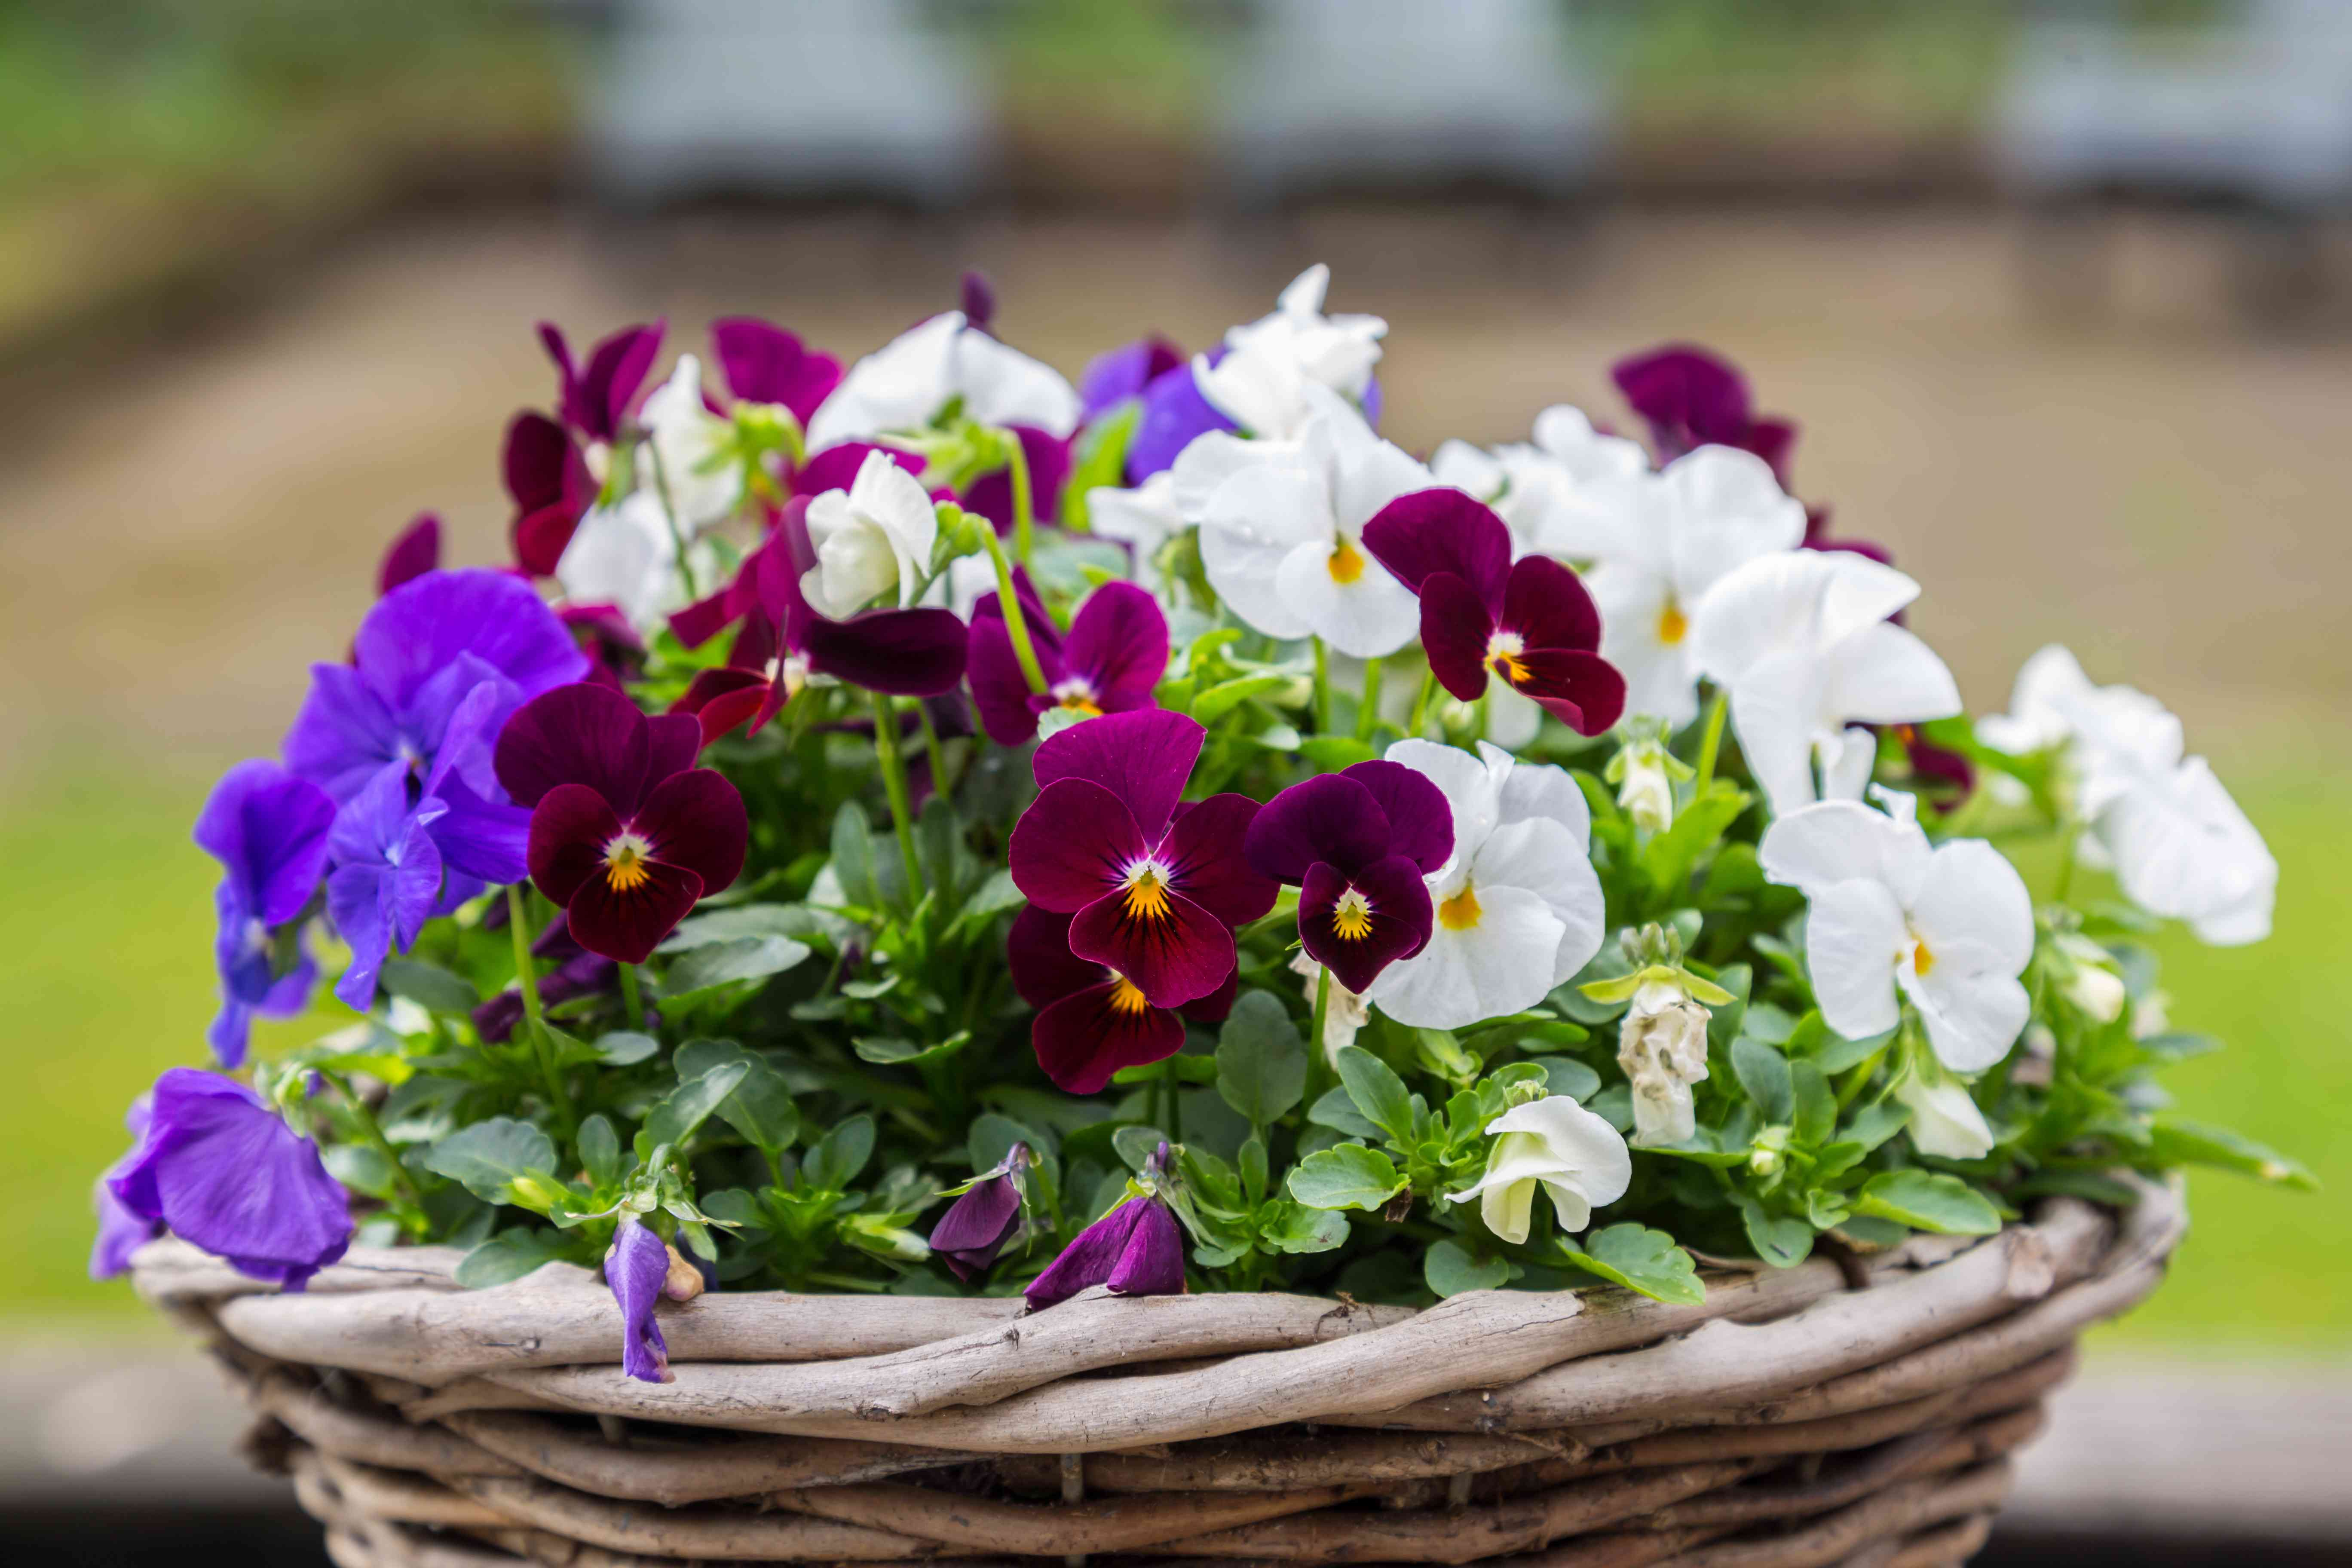 Multii colored viola in a basket